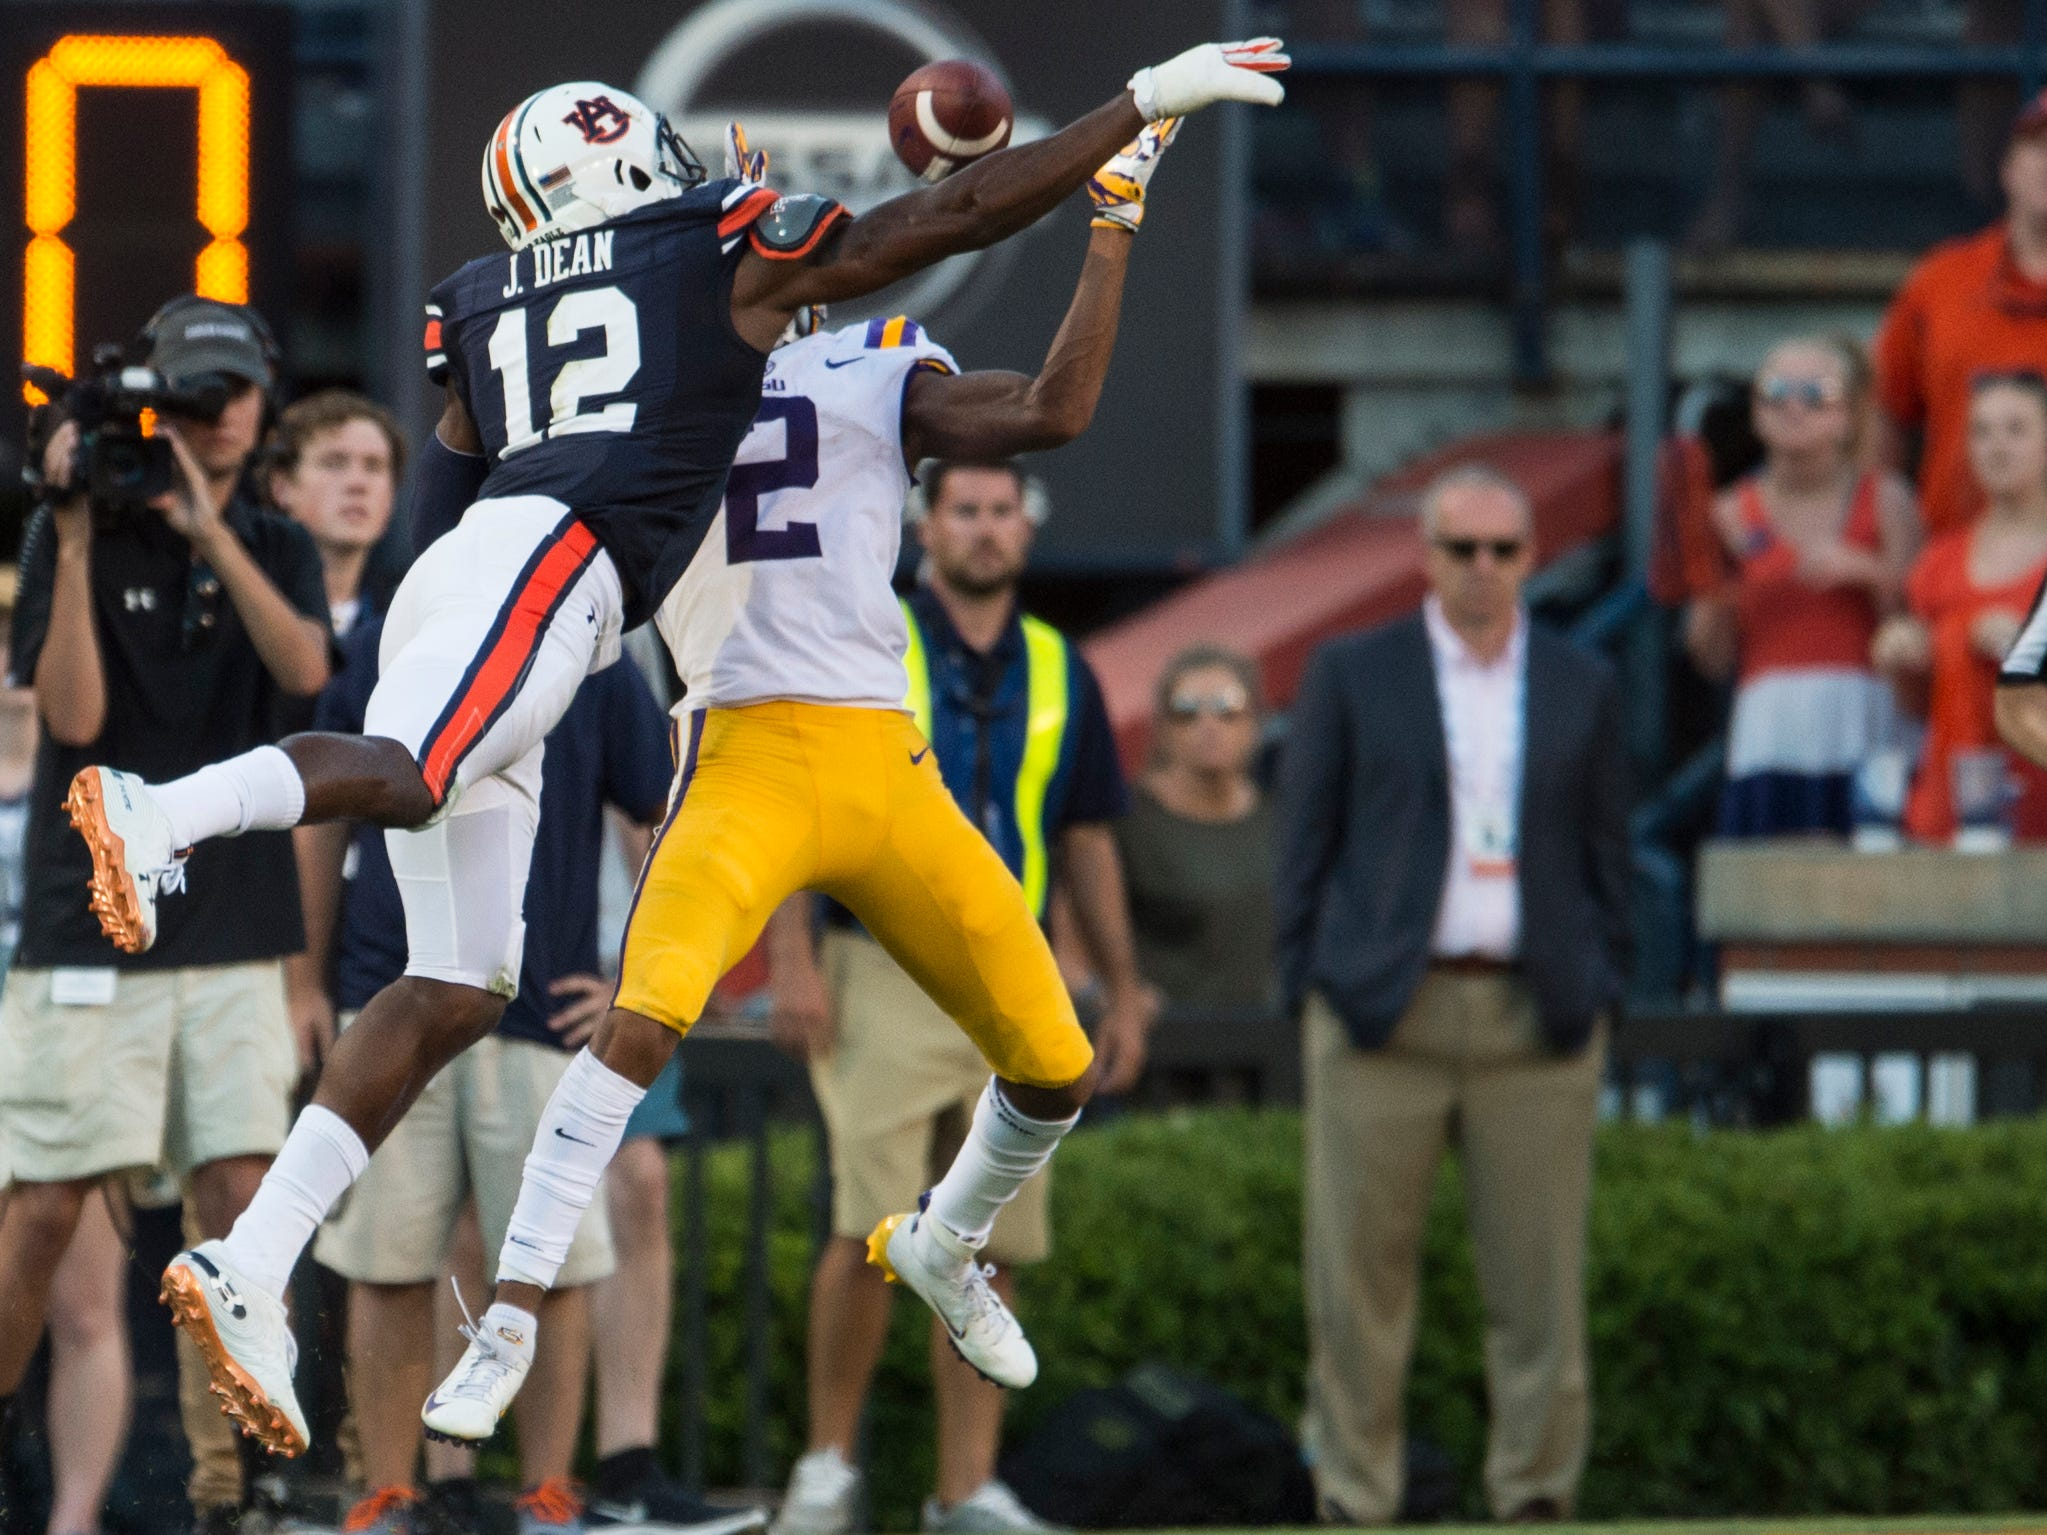 Auburn's Jamel Dean (12) is called for pass interference 0n LSU's Justin Jefferson (2) at Jordan-Hare Stadium in Auburn, Ala., on Saturday, Sept. 15, 2018. LSU defeated Auburn 22-21. The penalty set up the game winning field goal.